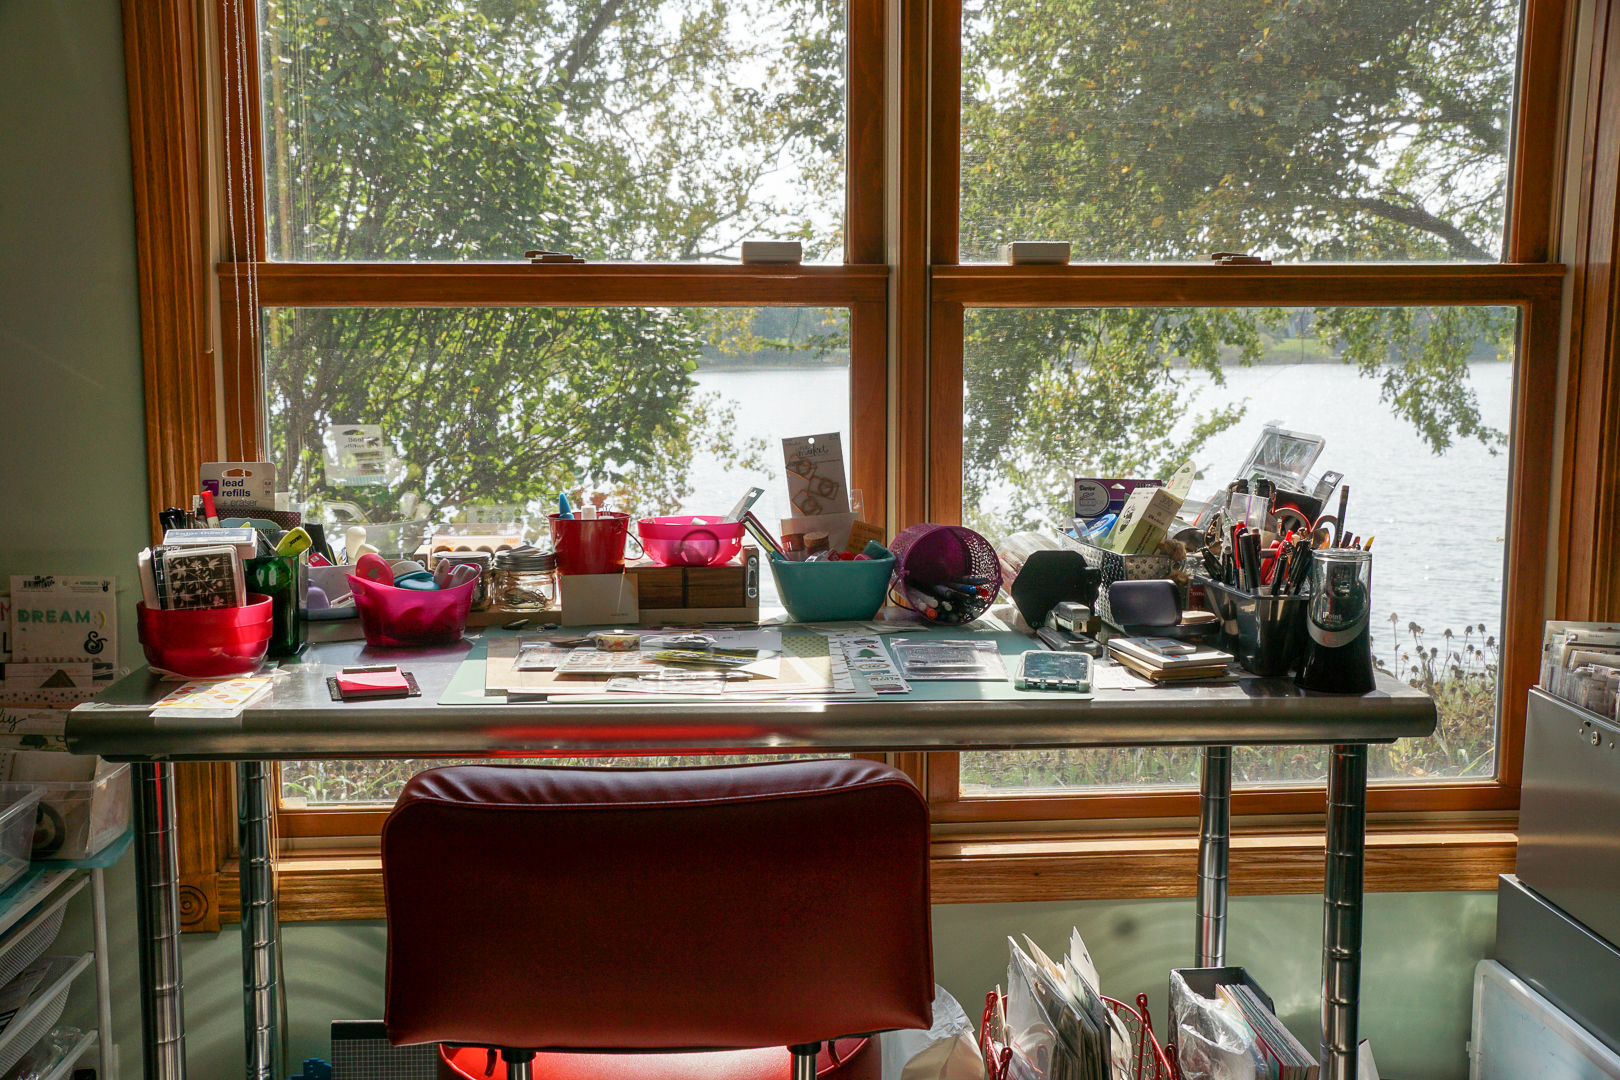 Where Do You Scrapbook? 4 Scrapbookers Share Their Spaces